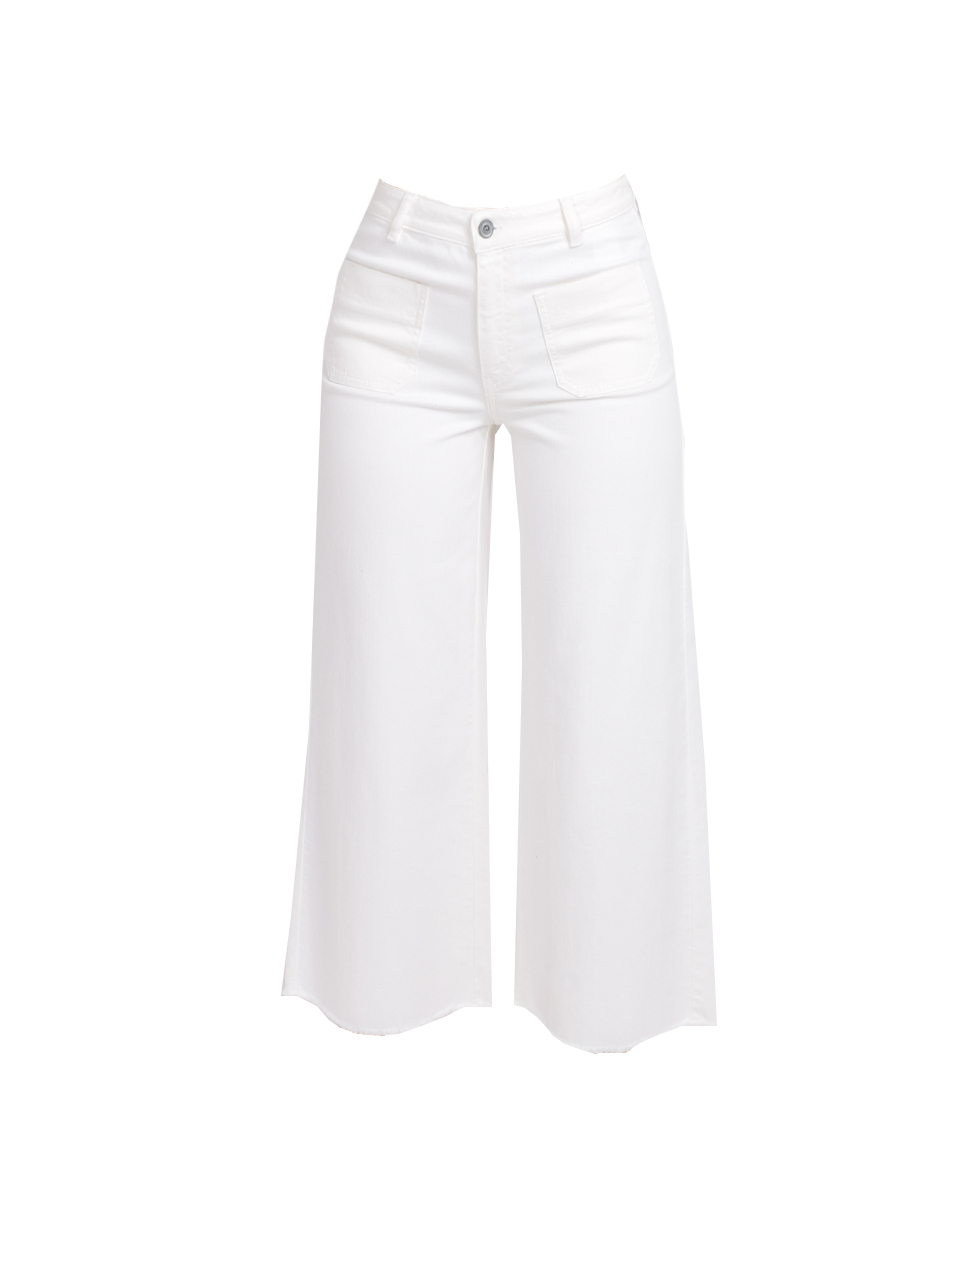 Ottod'Ame Cropped Flare Jeans in White Product Shot